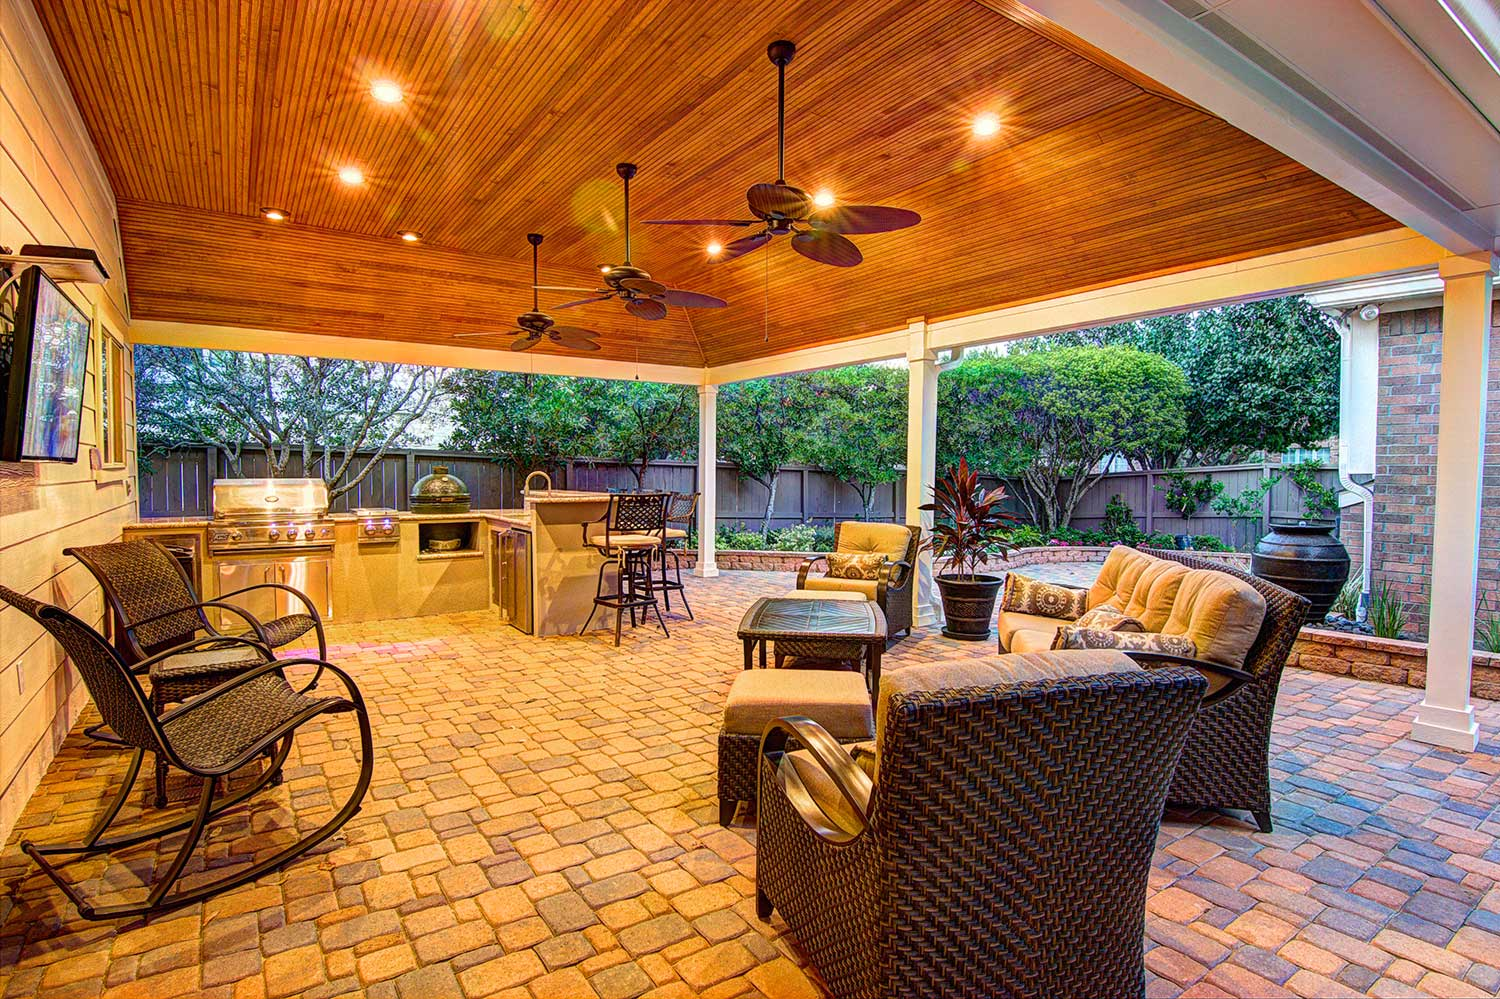 Tongue and Grove Patio Cover plus Outdoor Kitchen - HHI ... on Backyard Patio Cover  id=87877